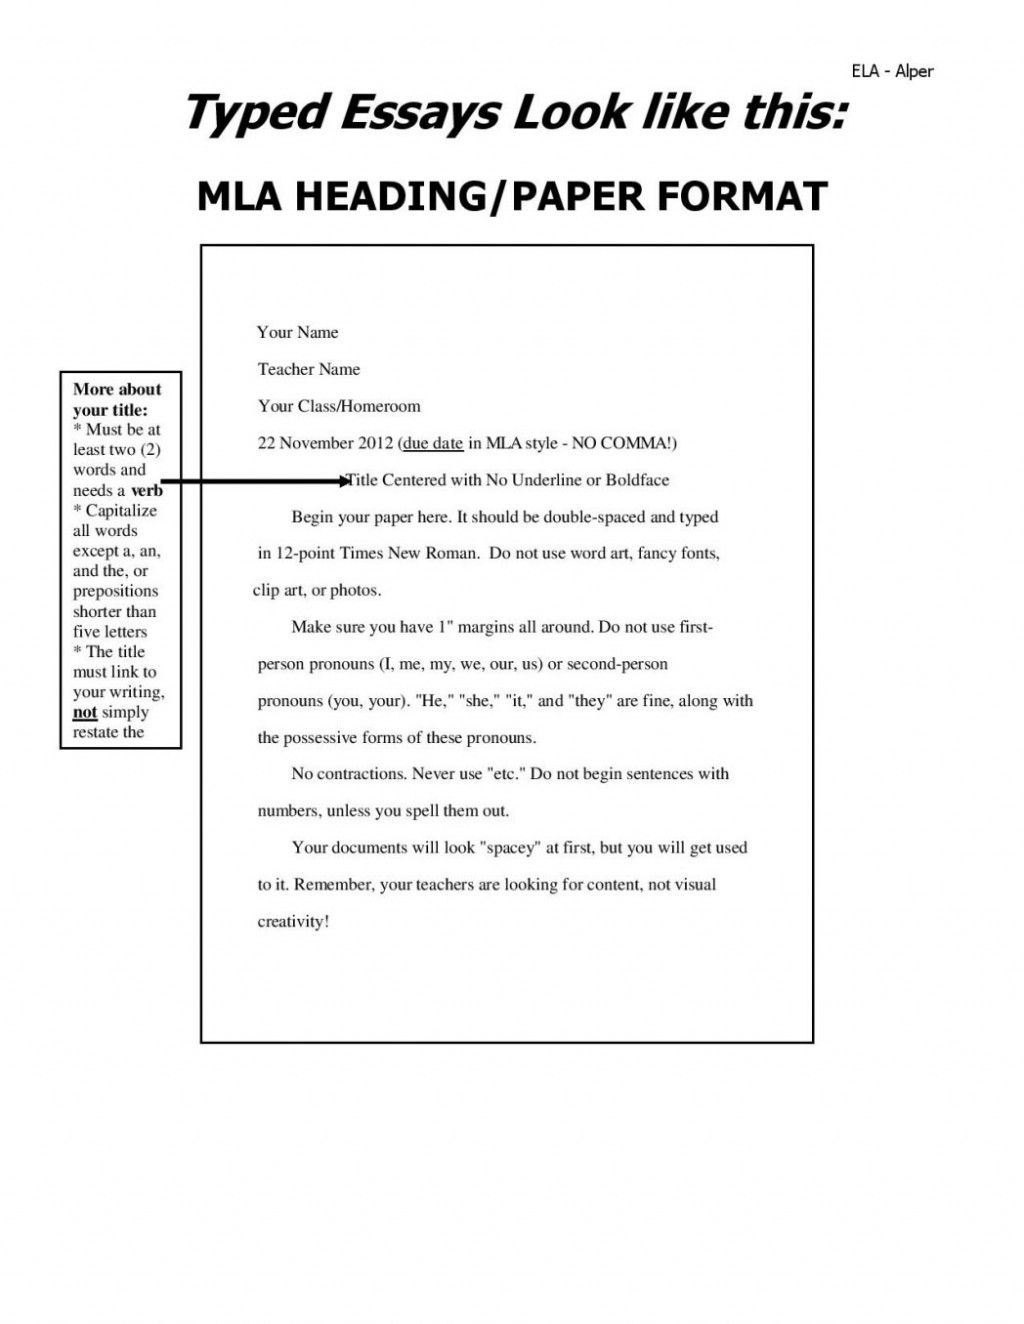 003 Enumeration Essay Essays On Walmart Persuasive Why We Shouldnt Best Way To Write An  Typed Look Like This Pag Proper For College 1048x1356 Example Dreaded OfLarge